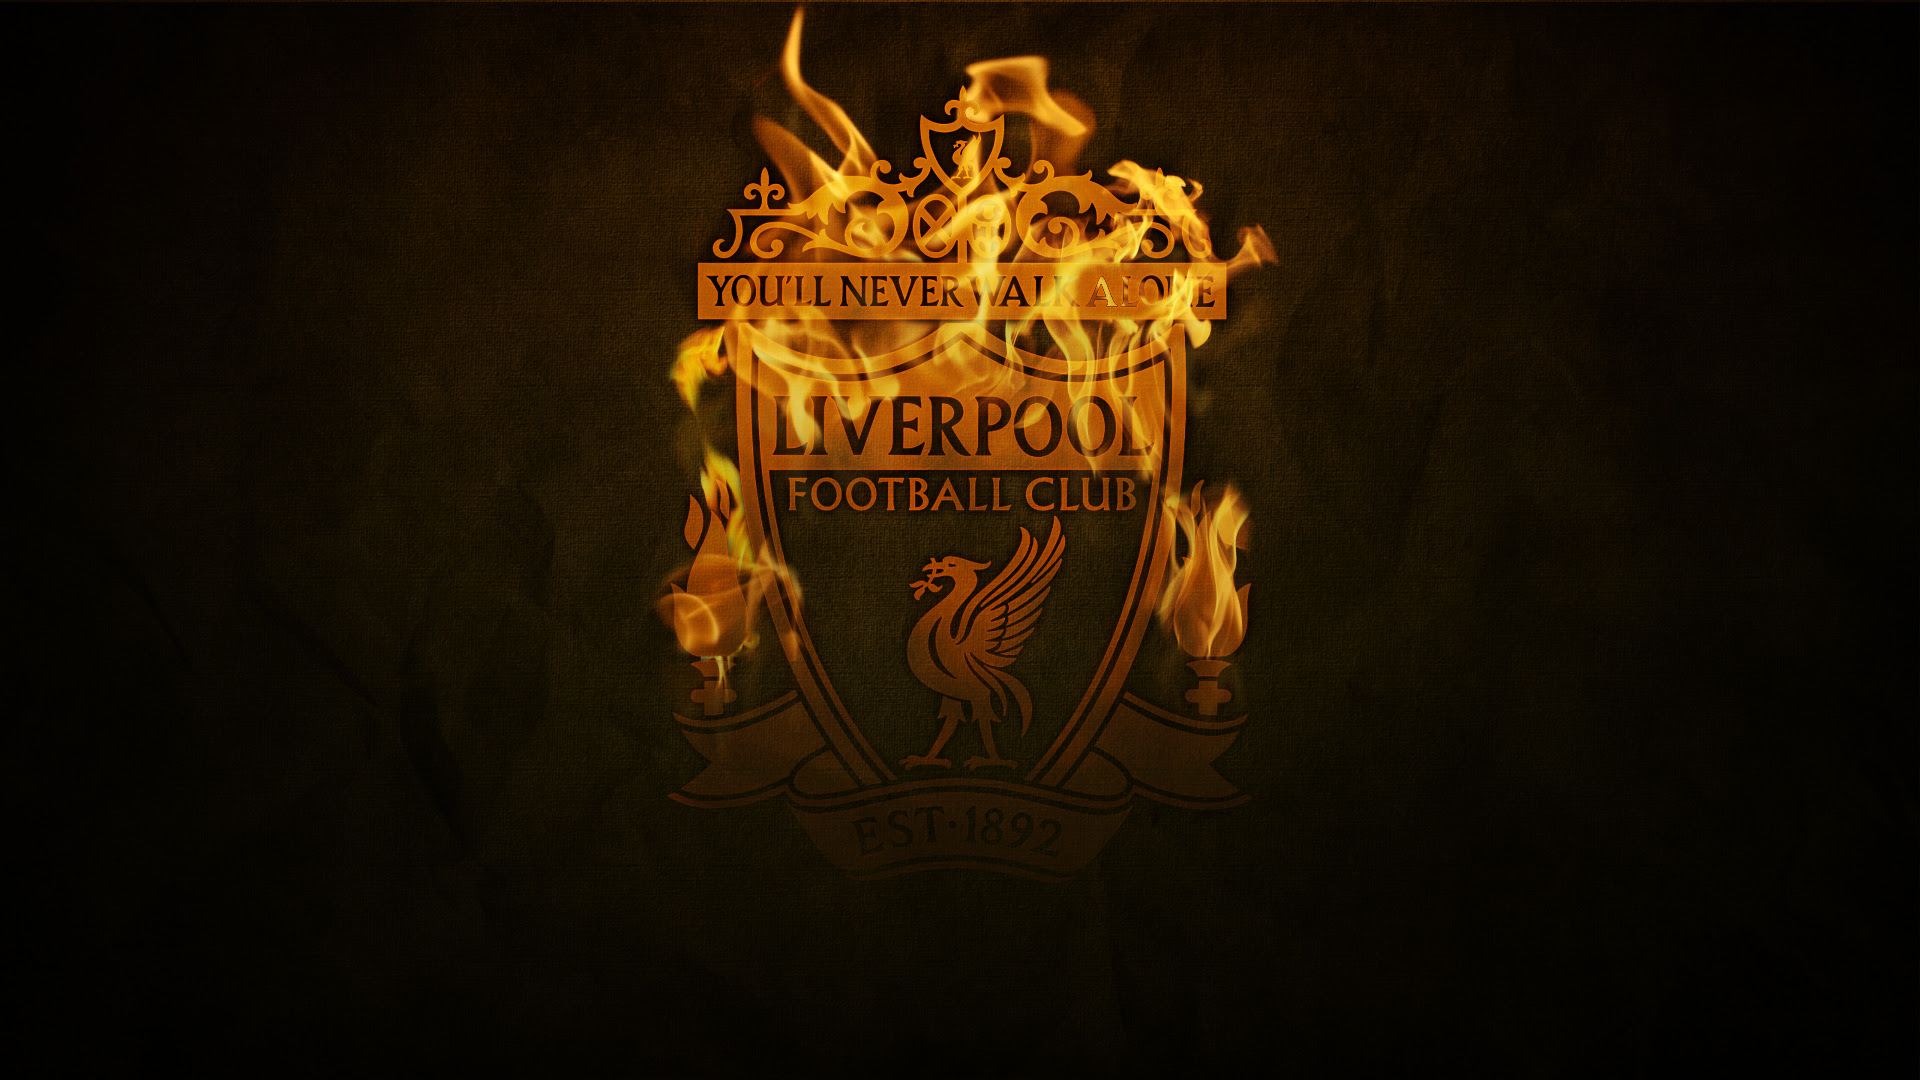 HD Liverpool Wallpapers | PixelsTalk.Net